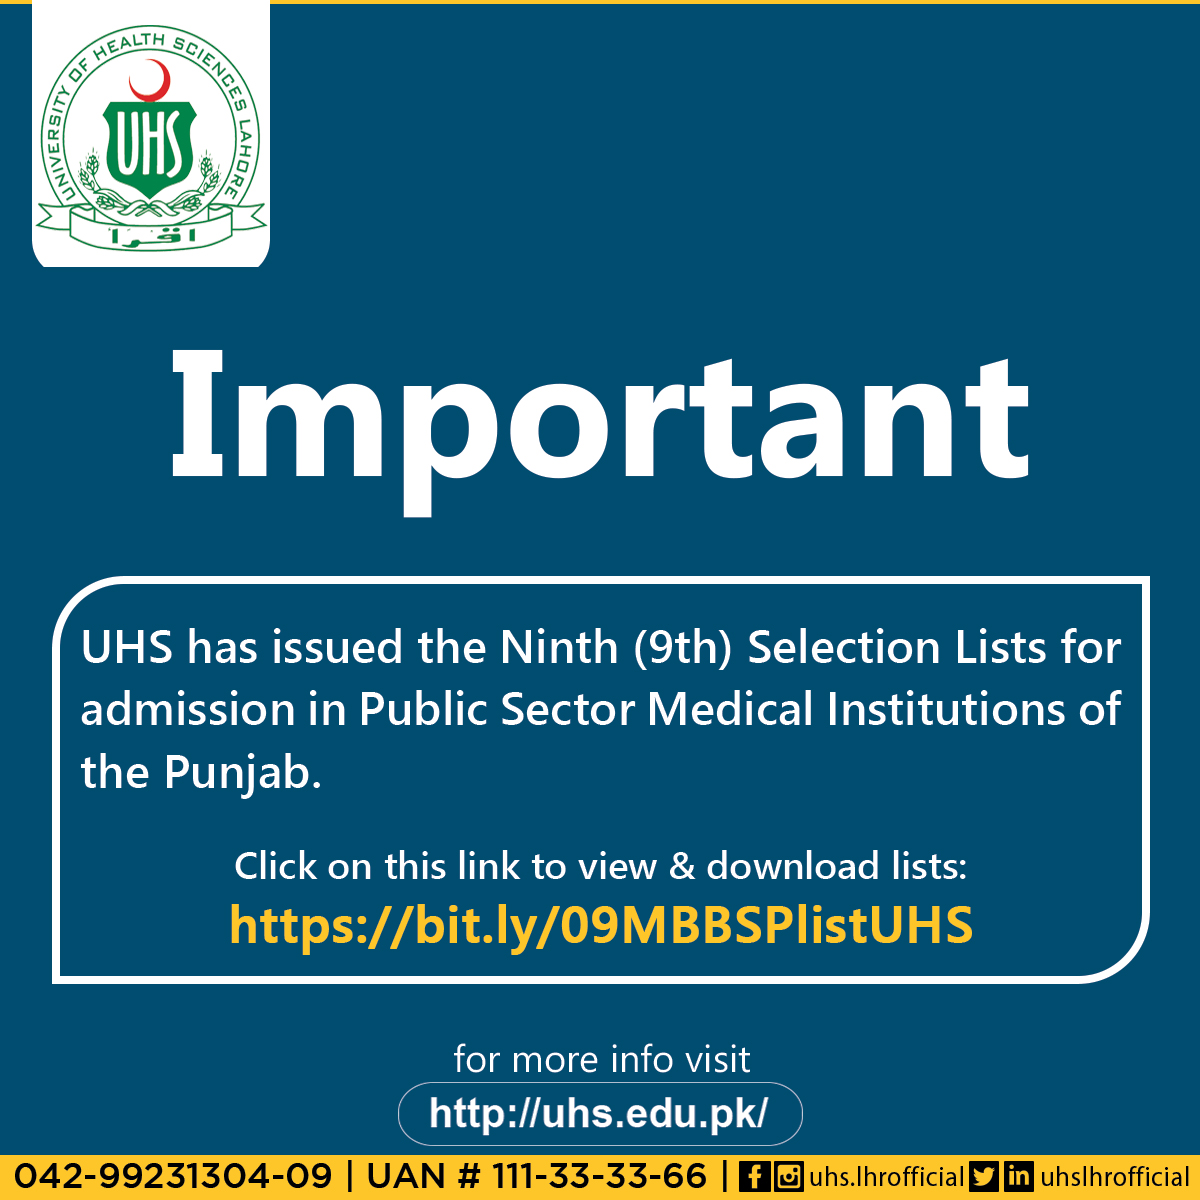 UHS has issued the Ninth (9th) Selection Lists for admission in Public Sector Medical Institutions of the Punjab. Click on this link to view & download lists: bit.ly/09MBBSPlistUHS